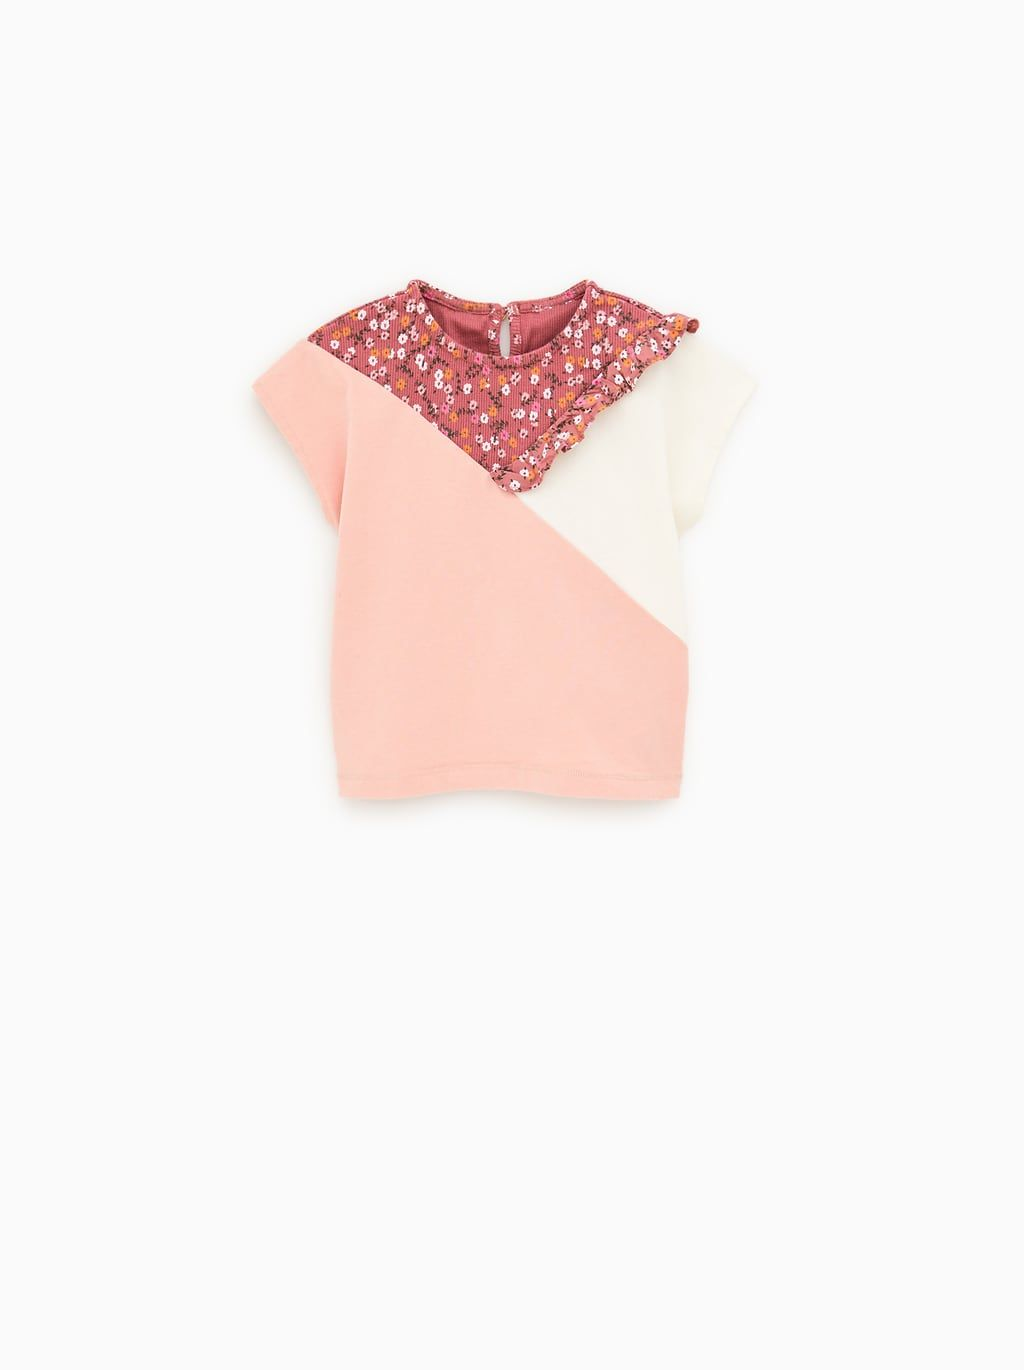 cb8ccdb5c8 Floral and ruffle t-shirt | For My Little One | Animal print shirts ...